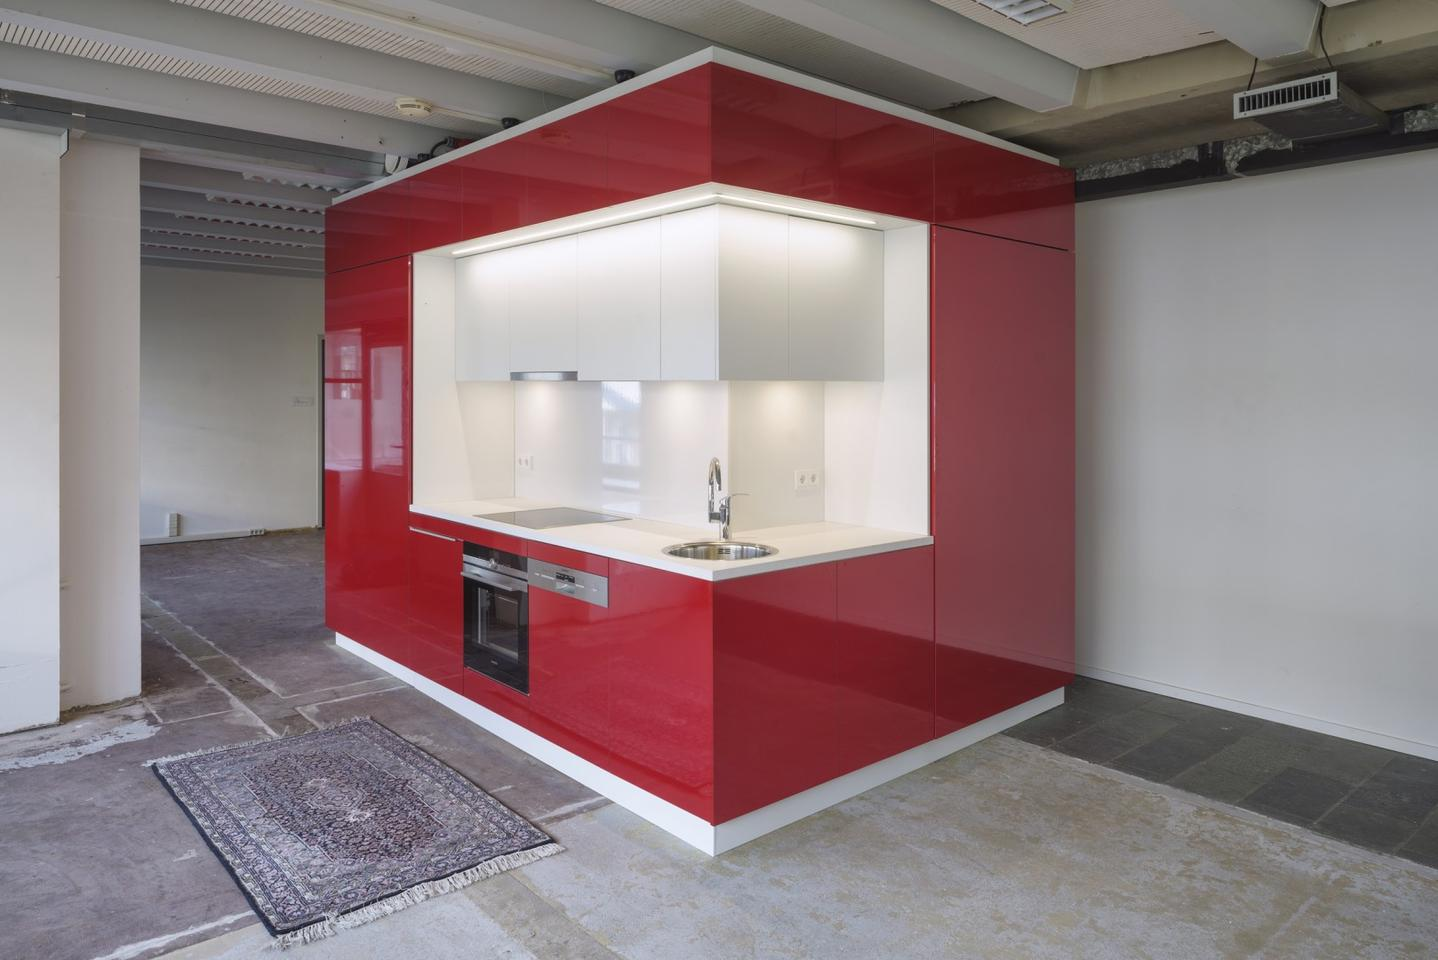 The Hub contains a kitchen, a bathroom with a toilet and facilities including heating, a sound system and an internet connection